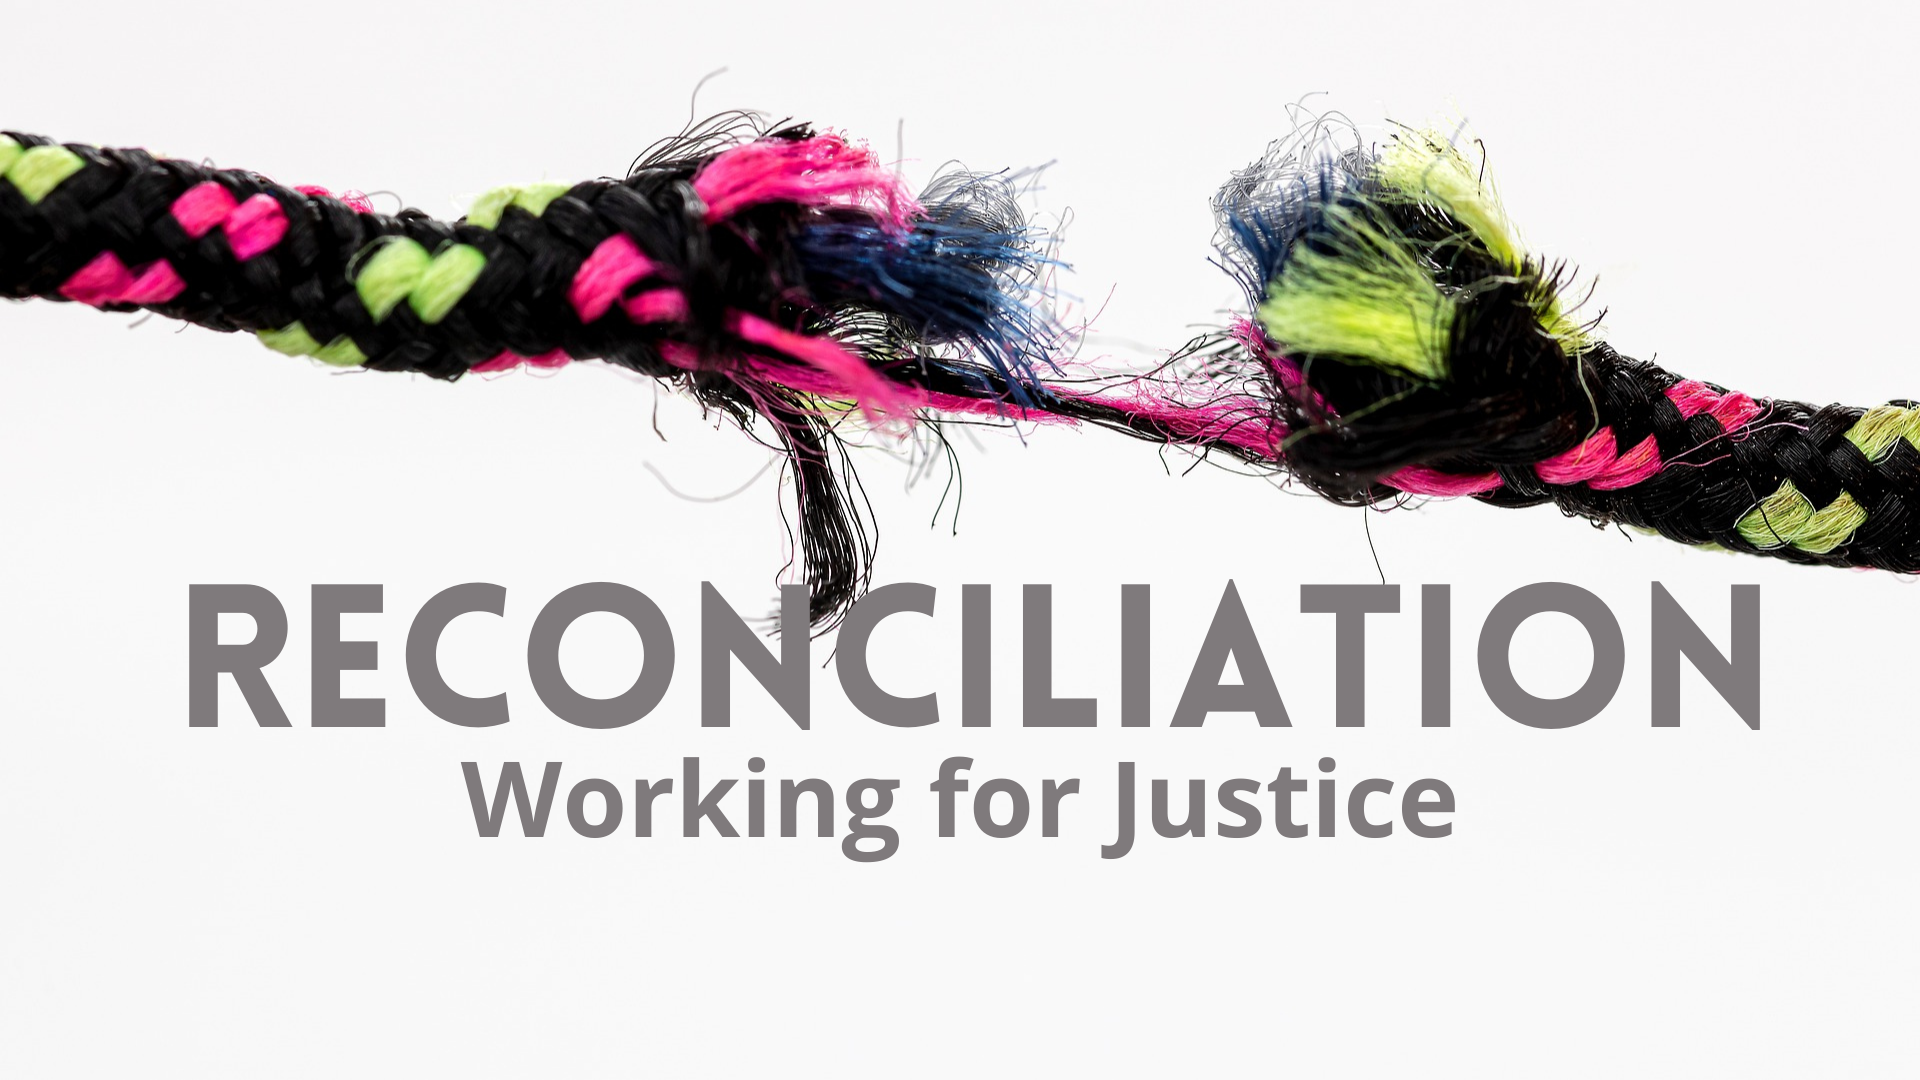 Reconciliation working for justice logo